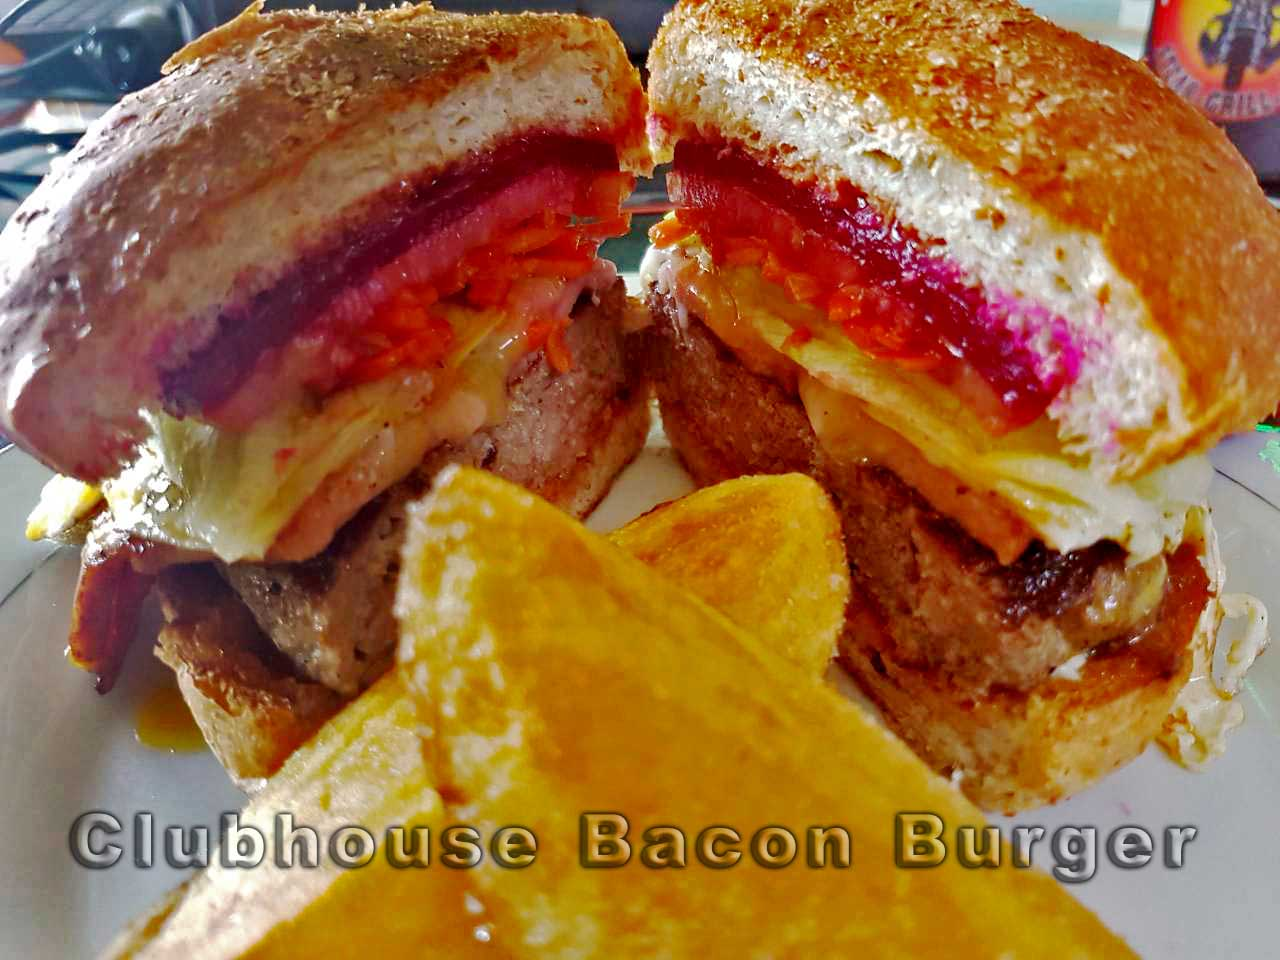 The Clubhouse Bacon Burger Clubhouse Steak Grill & Bar